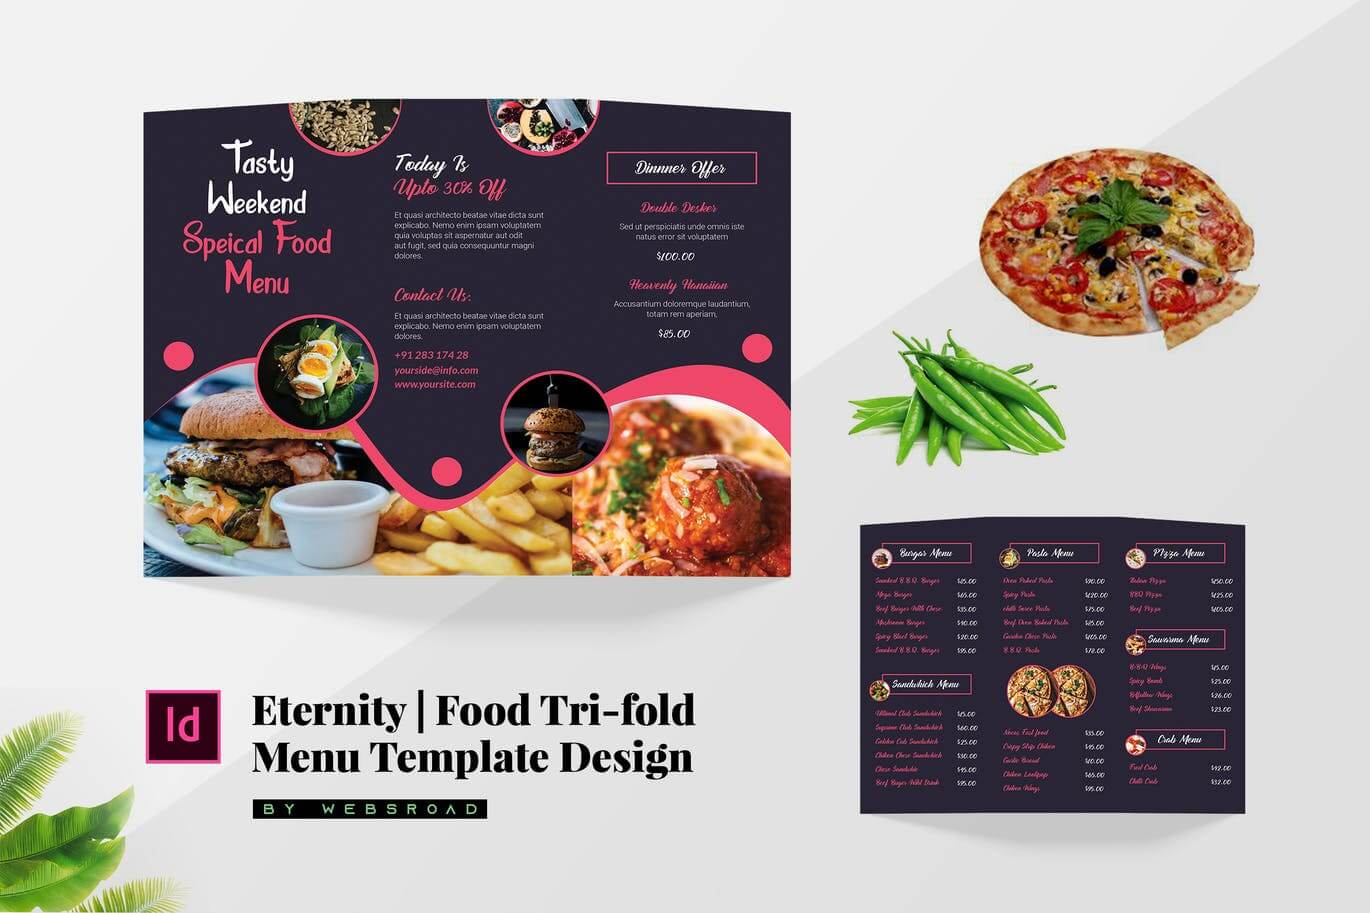 Eternity Food Tri-Fold Menu Template Design (1)